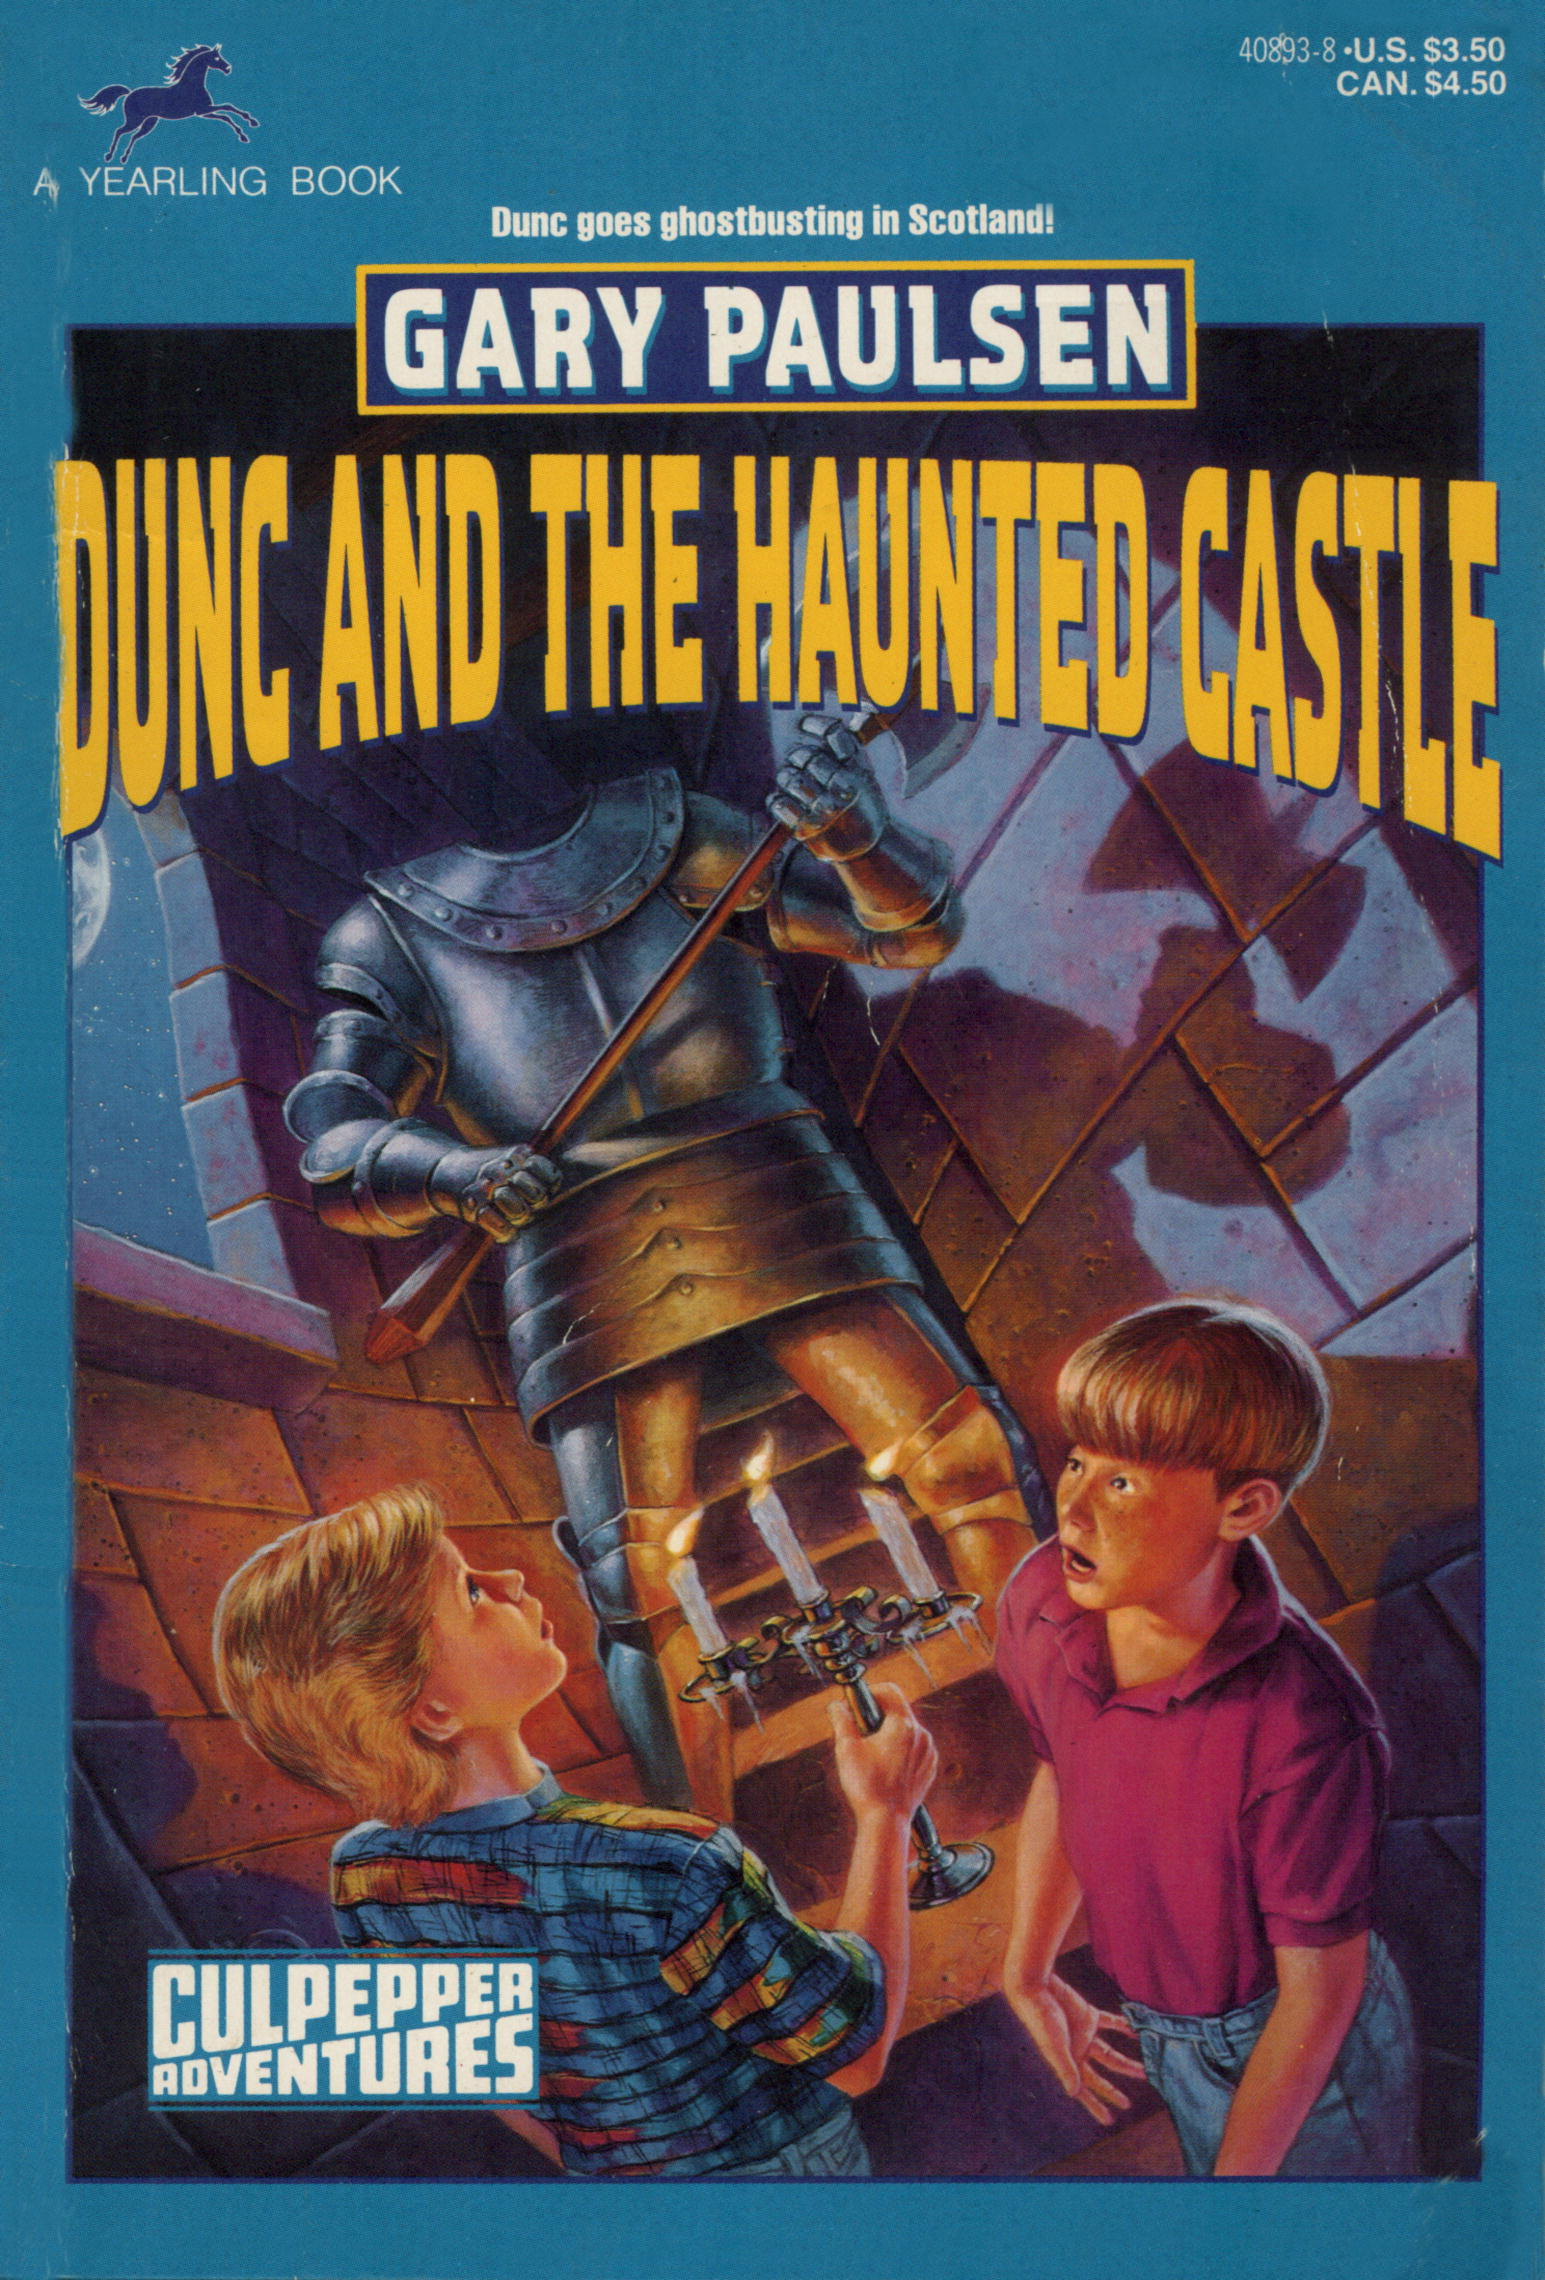 DUNC AND THE HAUNTED CASTLE